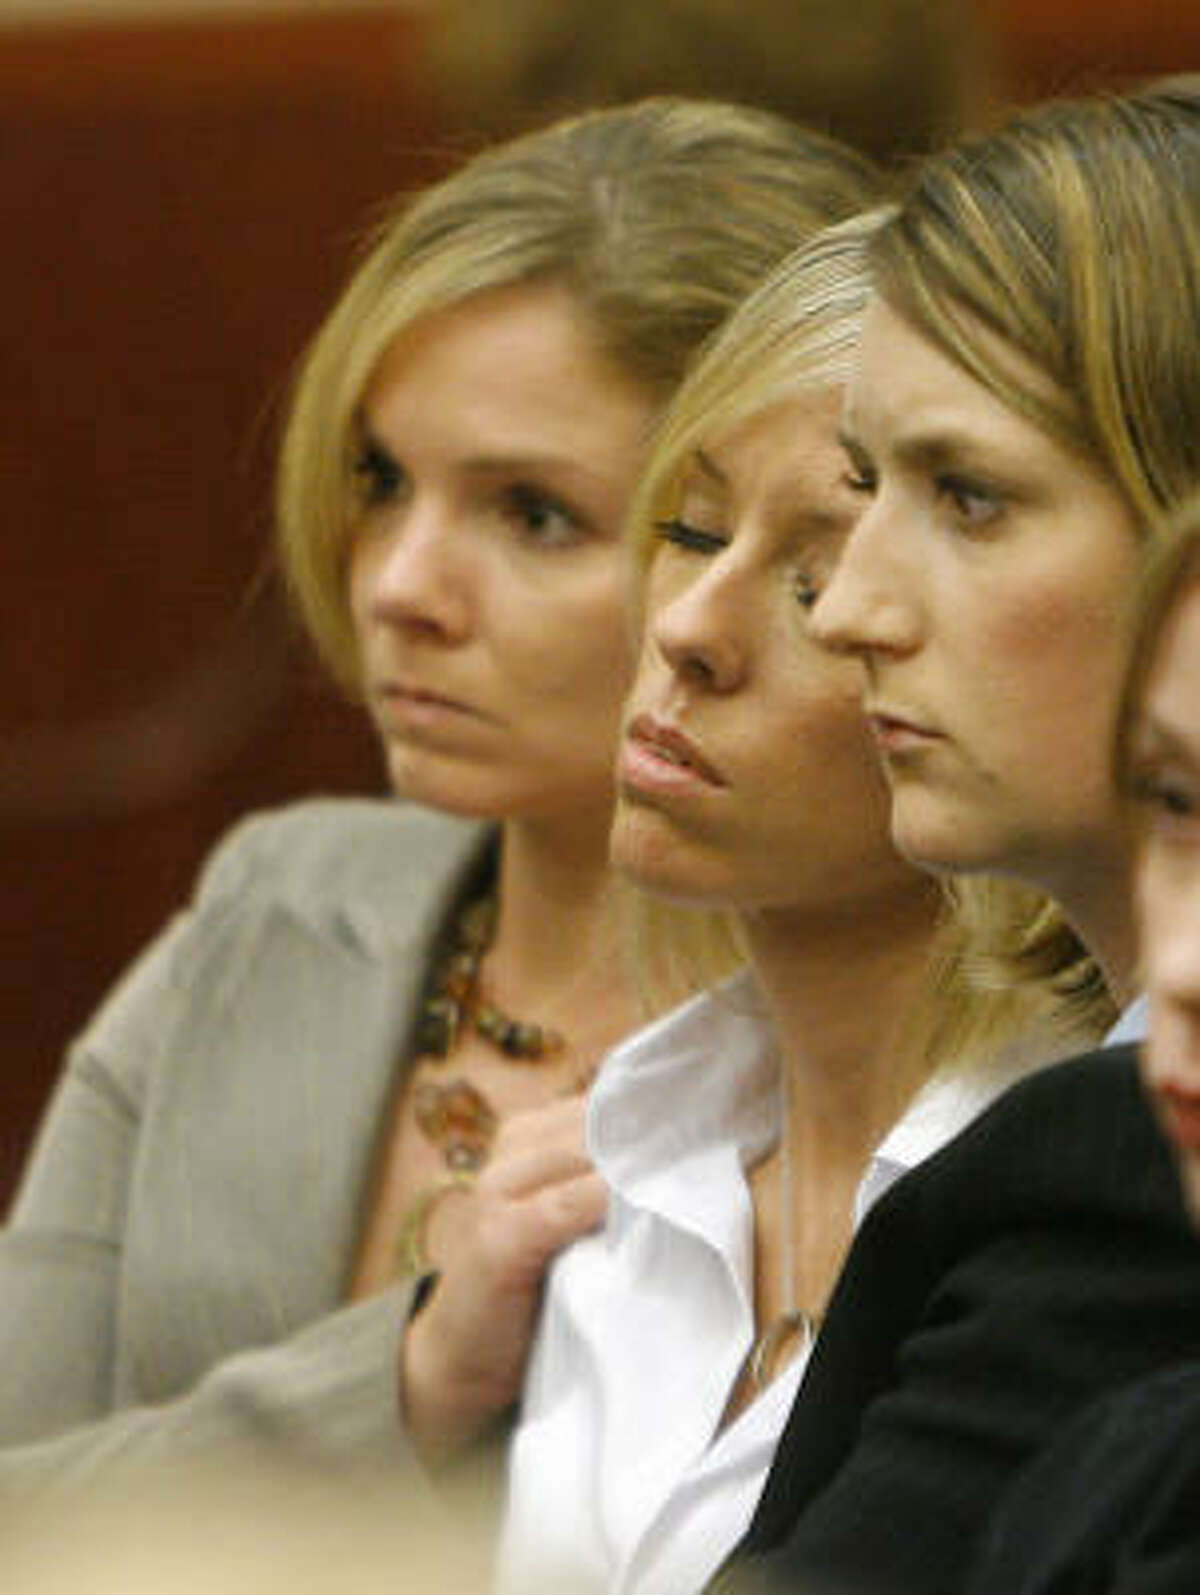 Heather Scott Temple, center, is comforted by friends during final arguments in the punishment phase of the trial of her husband, David Temple.